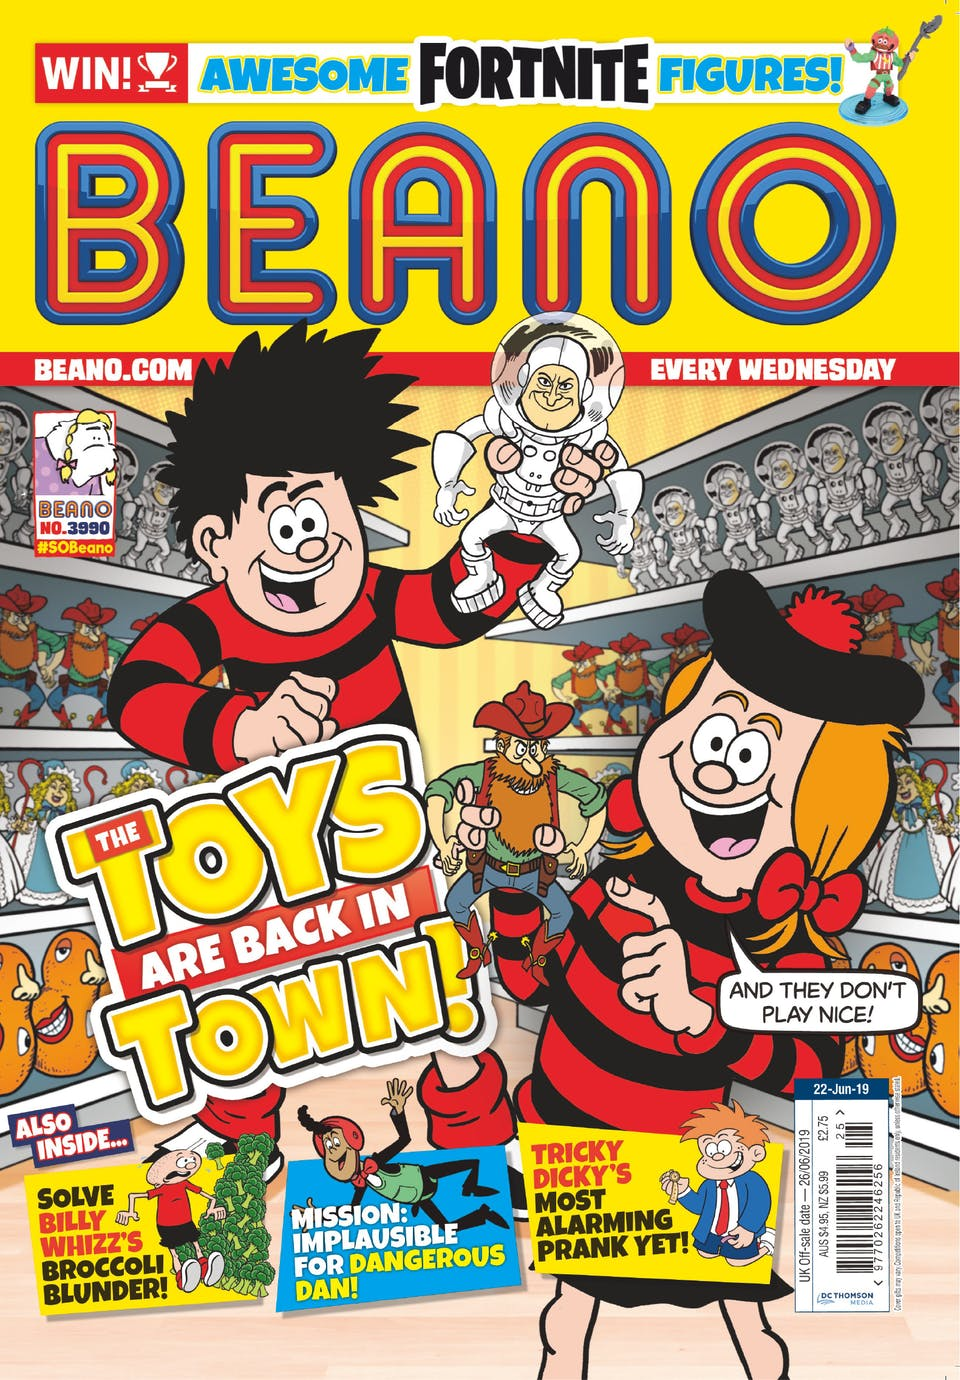 Inside Beano no. 3990 - The Toys are Back in Town!